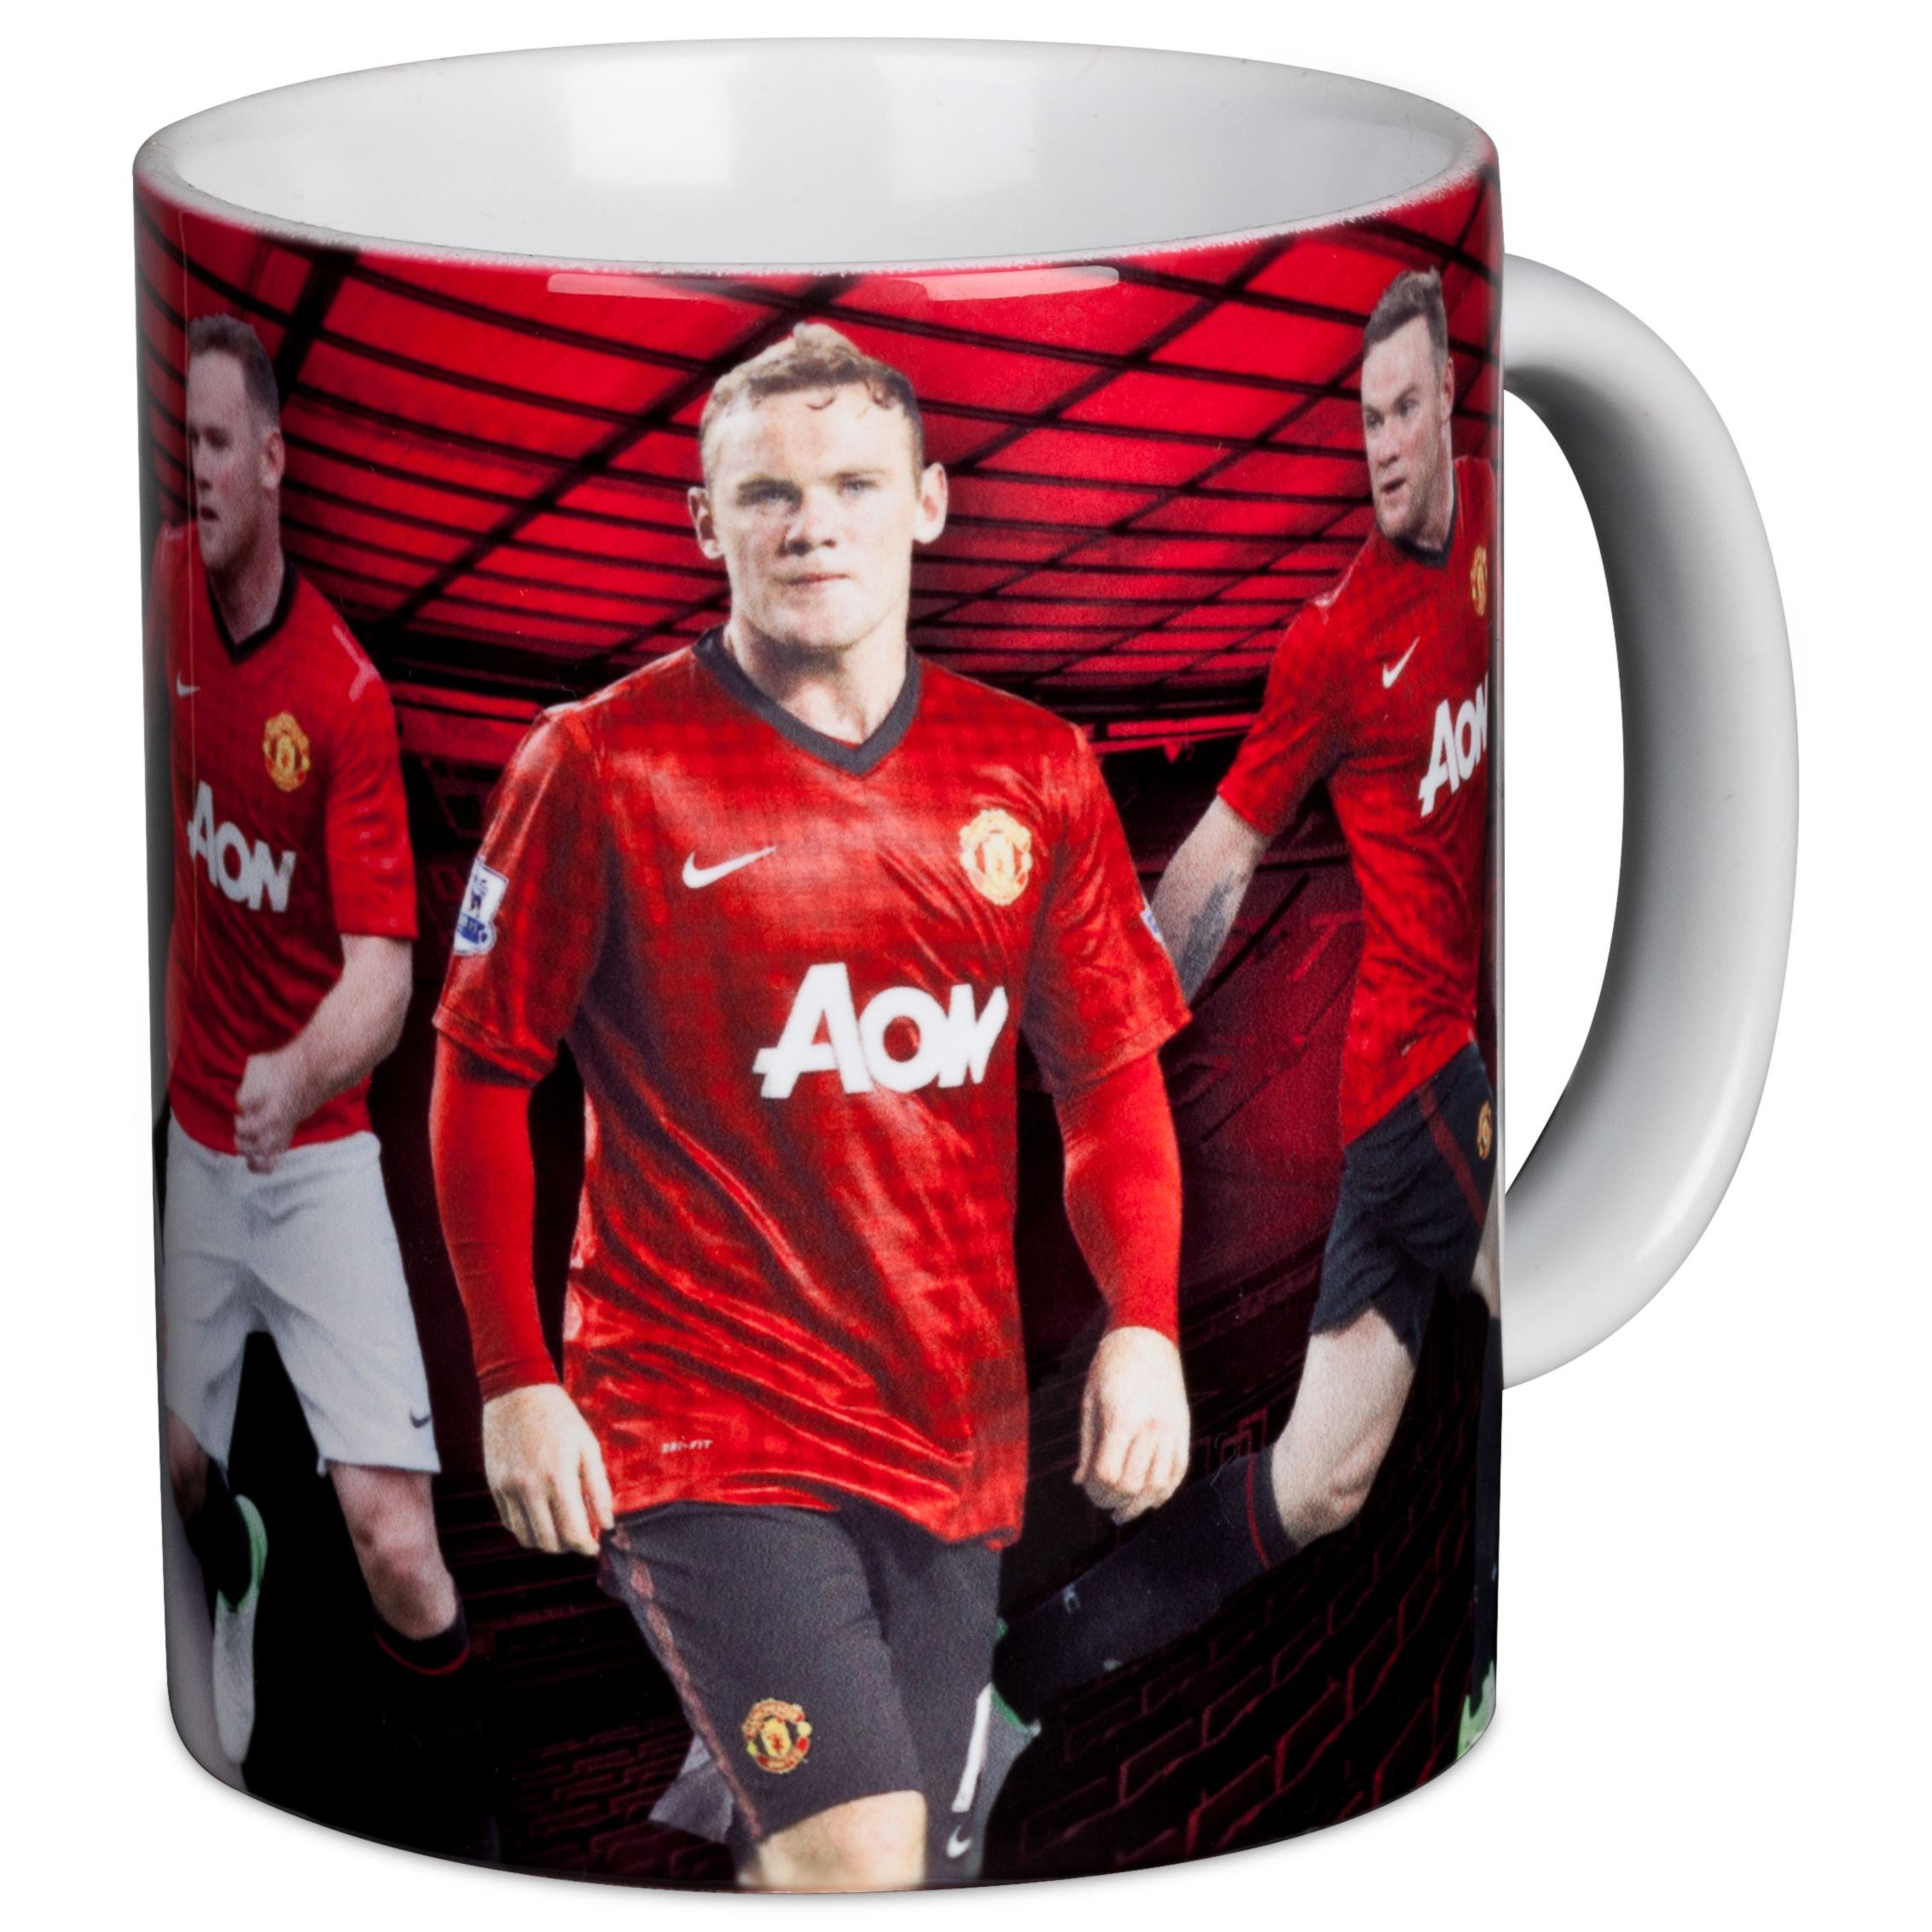 Manchester United 2012/13 Rooney Mug